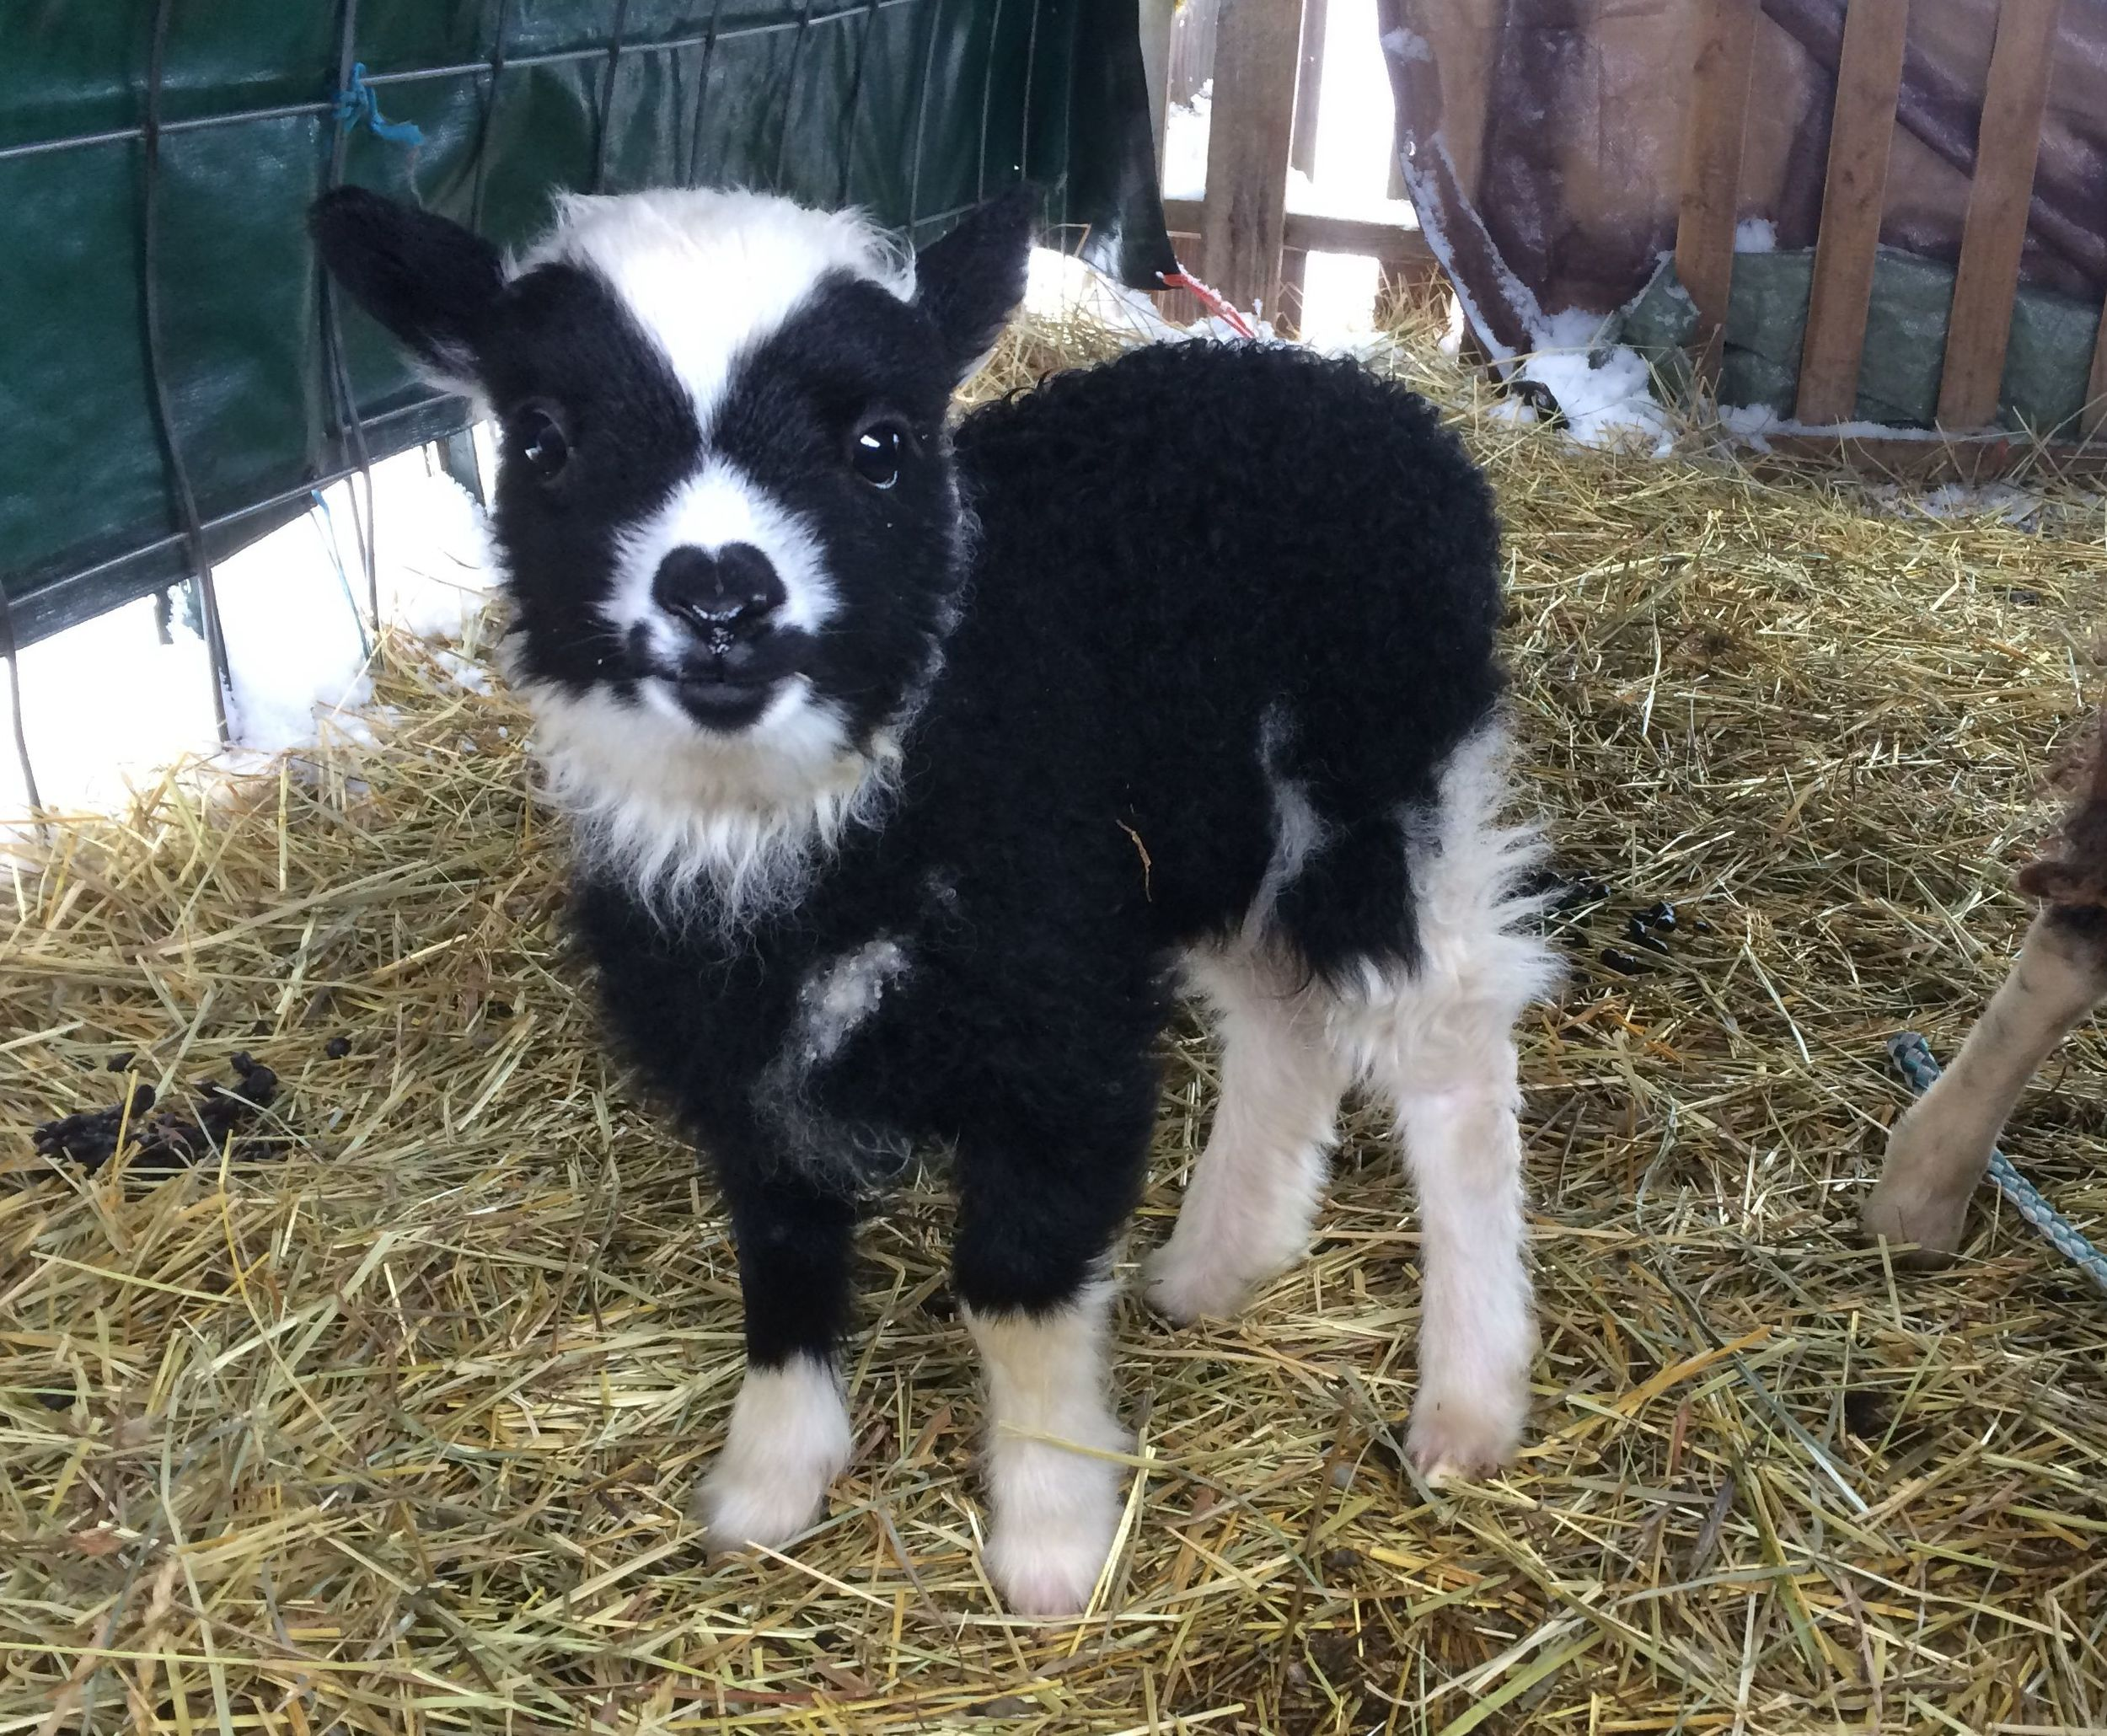 Sire: Bellwether Muckle  Dam: Whispering Pines Lilac